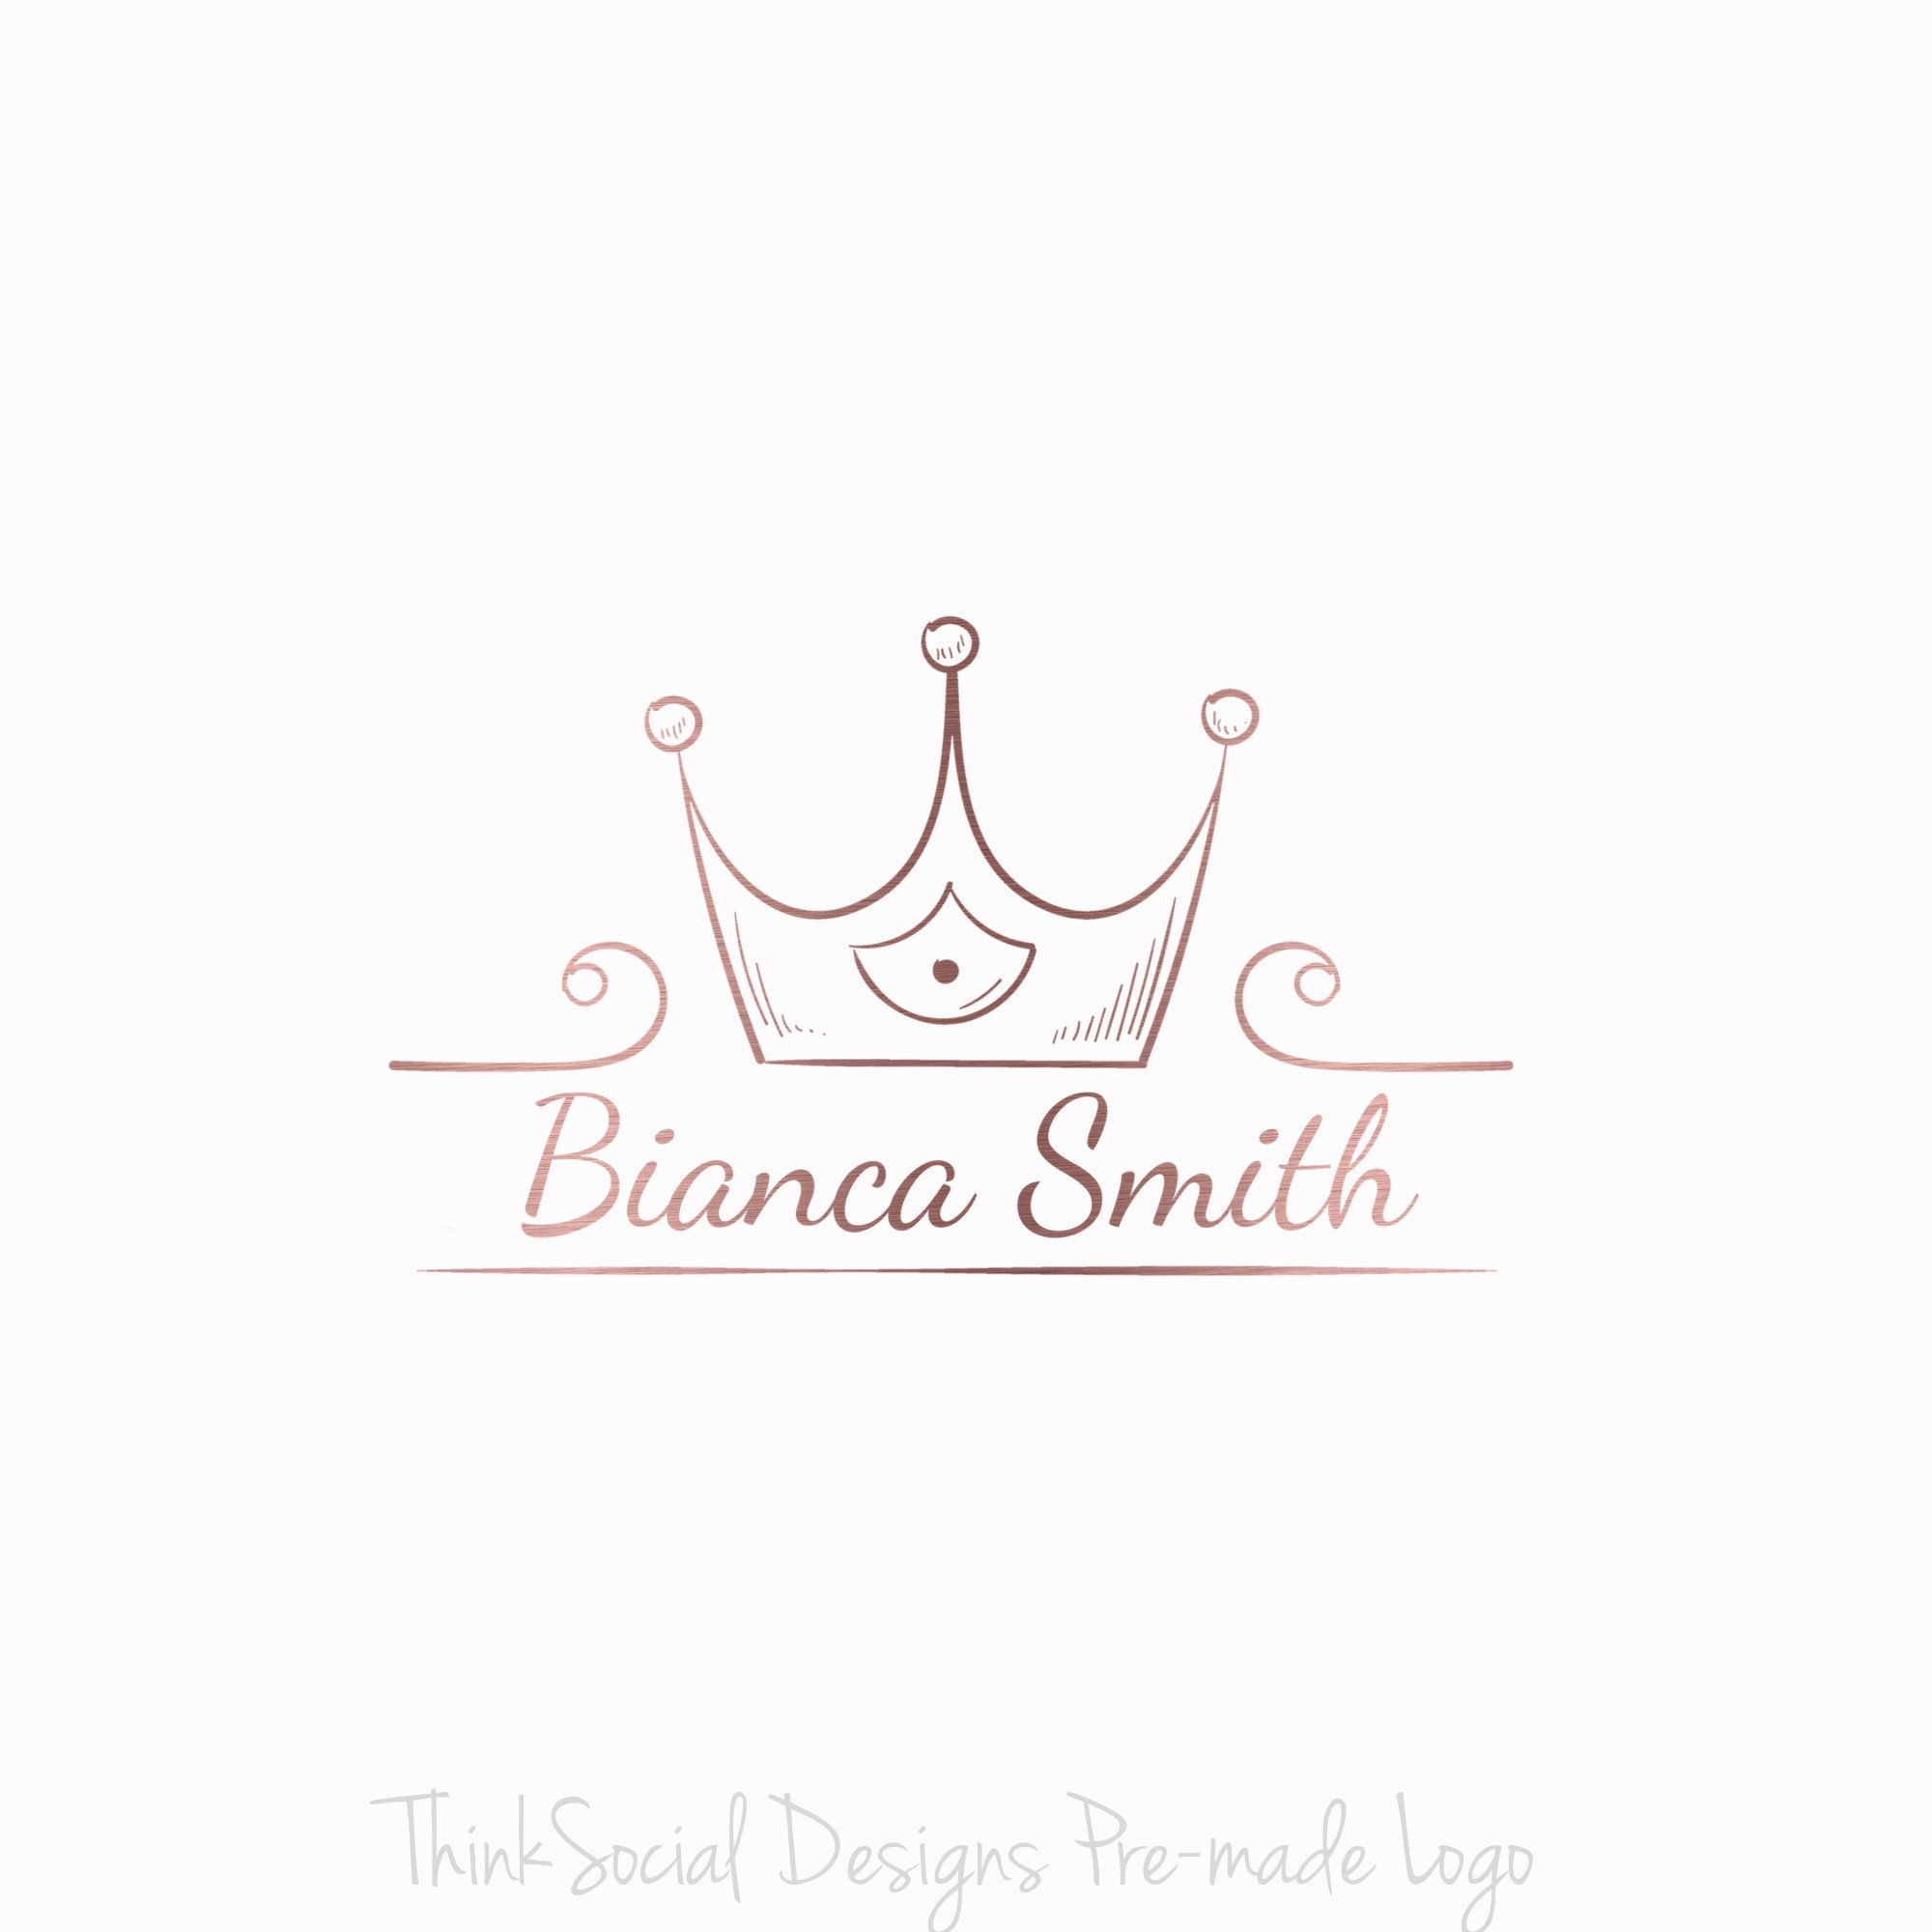 Premade Logo Rose Gold Logo Crown Logo Tiara Logo Business Logo Boutique Logo Feminine Logo Photography Log Rose Gold Logo Custom Logo Design Crown Logo